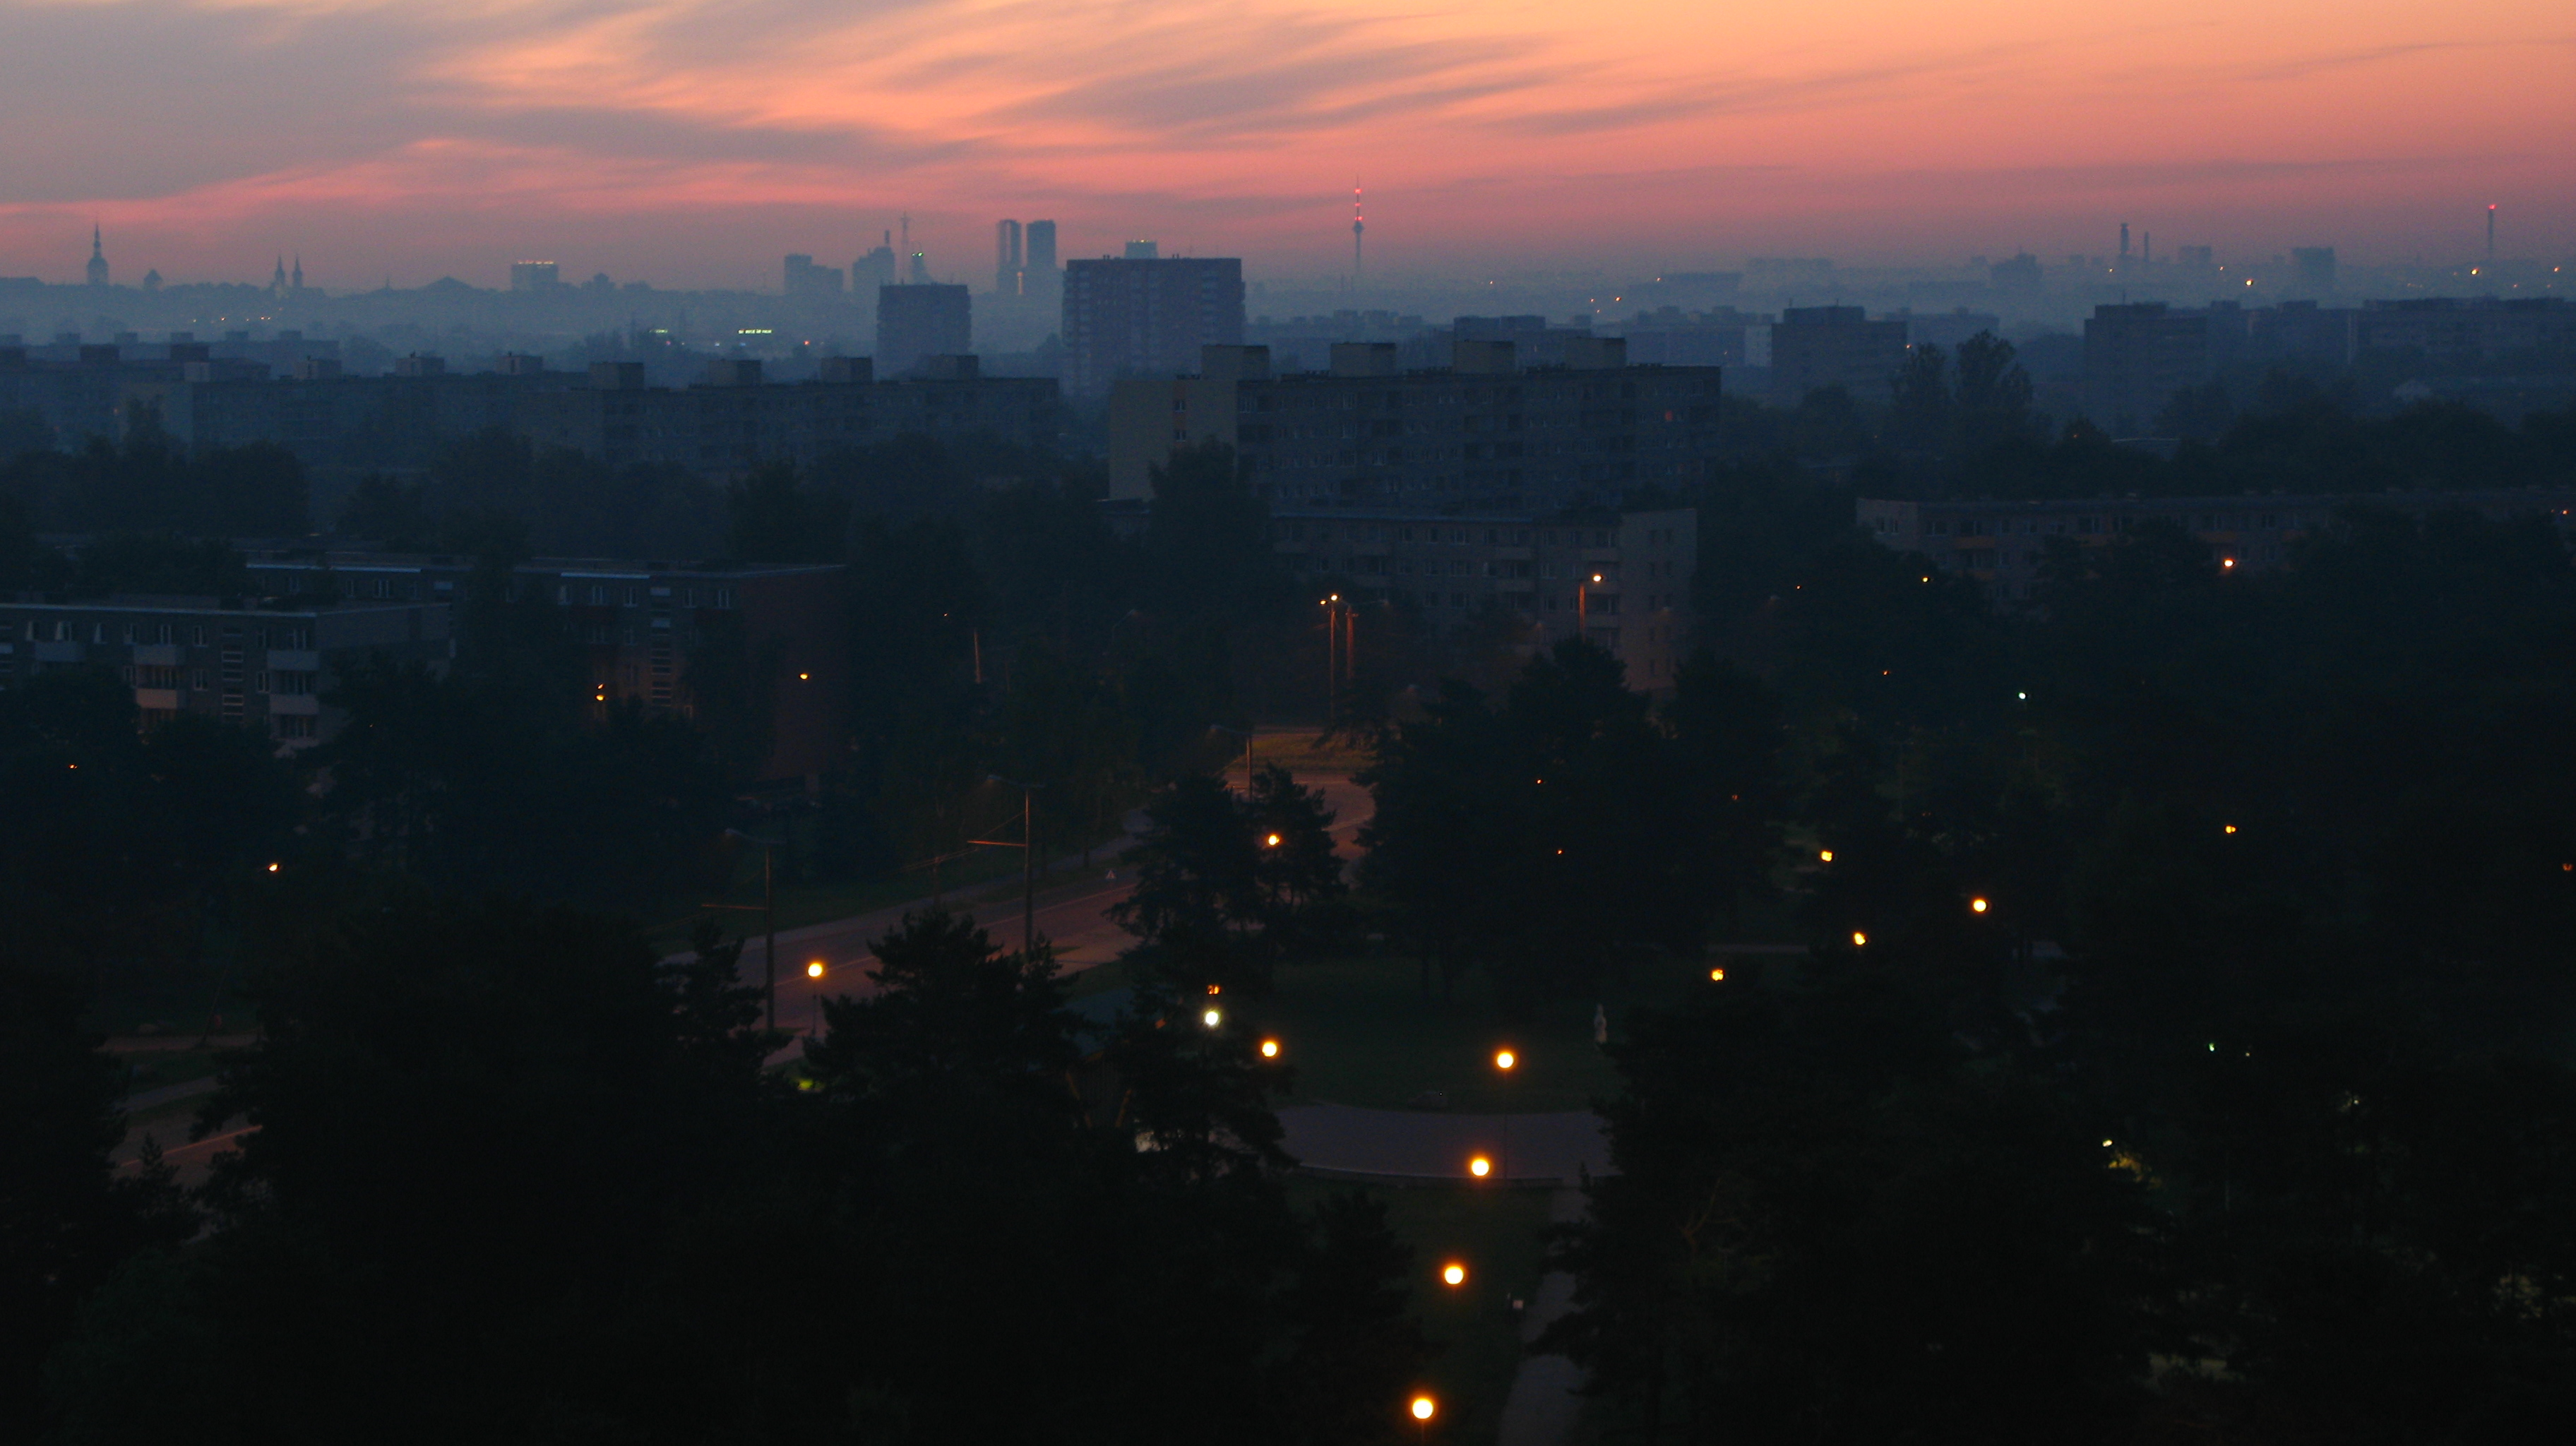 A park with street lamps before sunrise, city center on the background